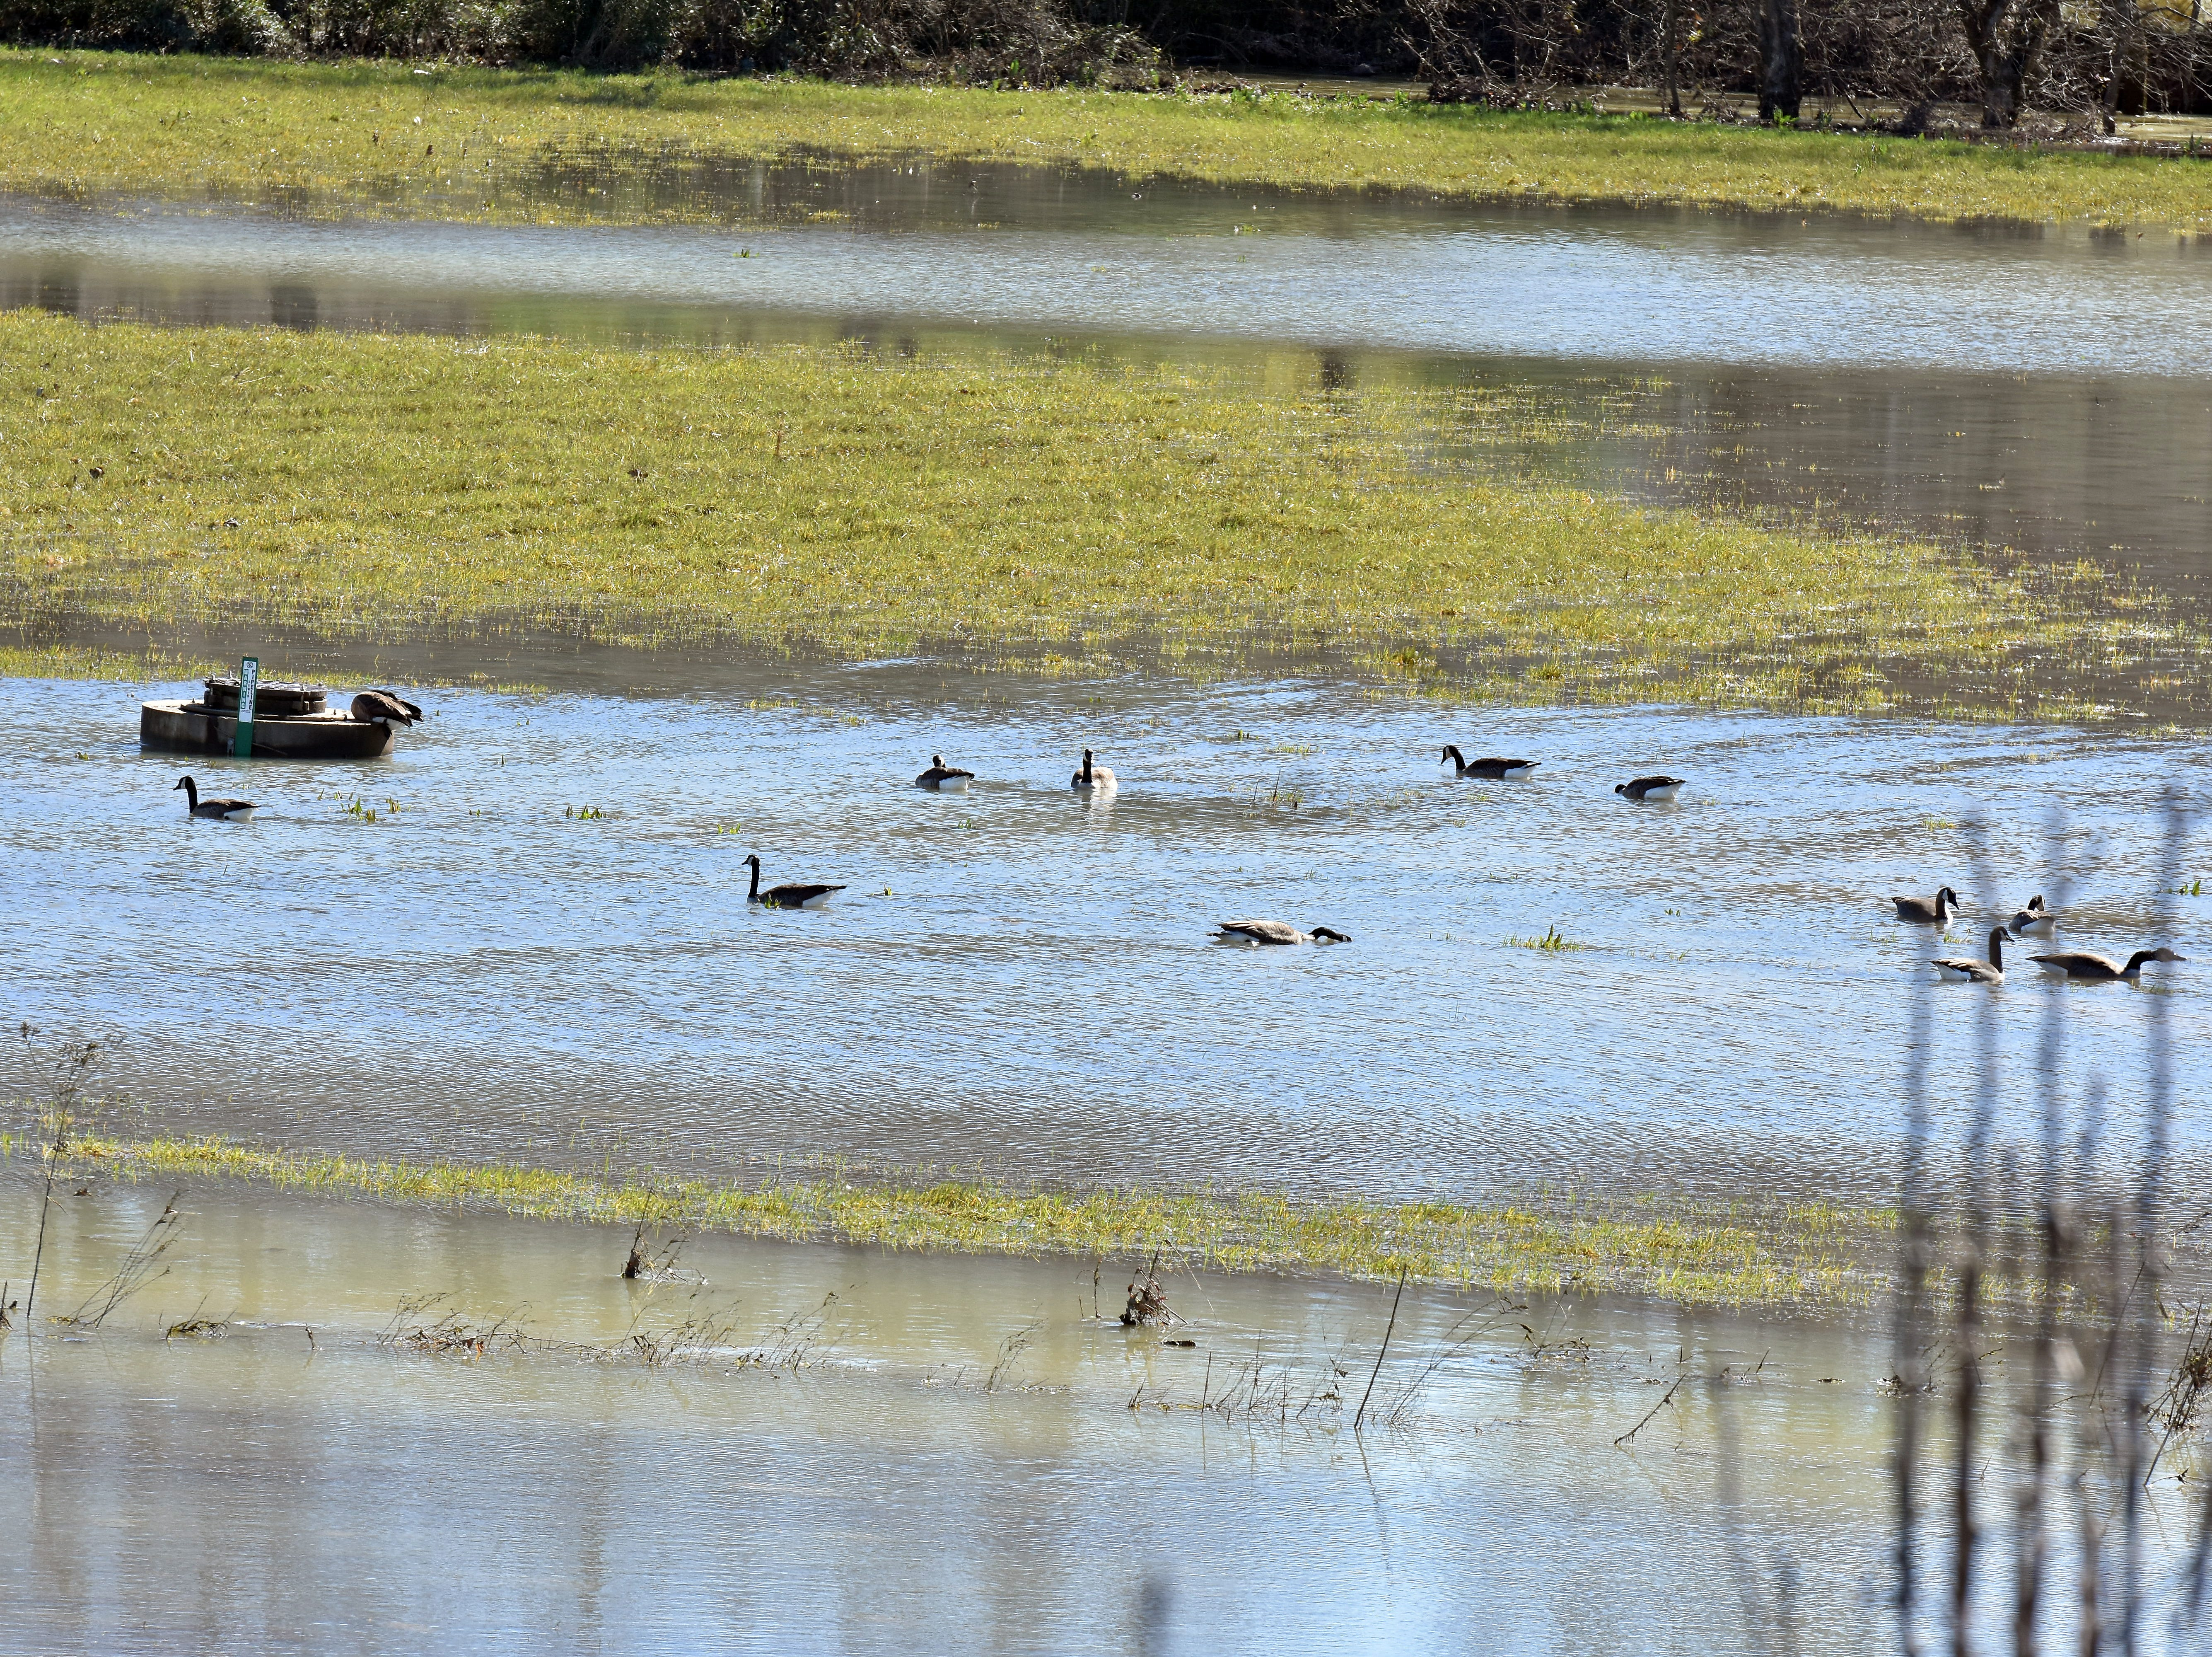 The land next to Brickey-McCloud Elementary is beginning to reappear as water recedes. These geese are enjoying the flood waters while they last.